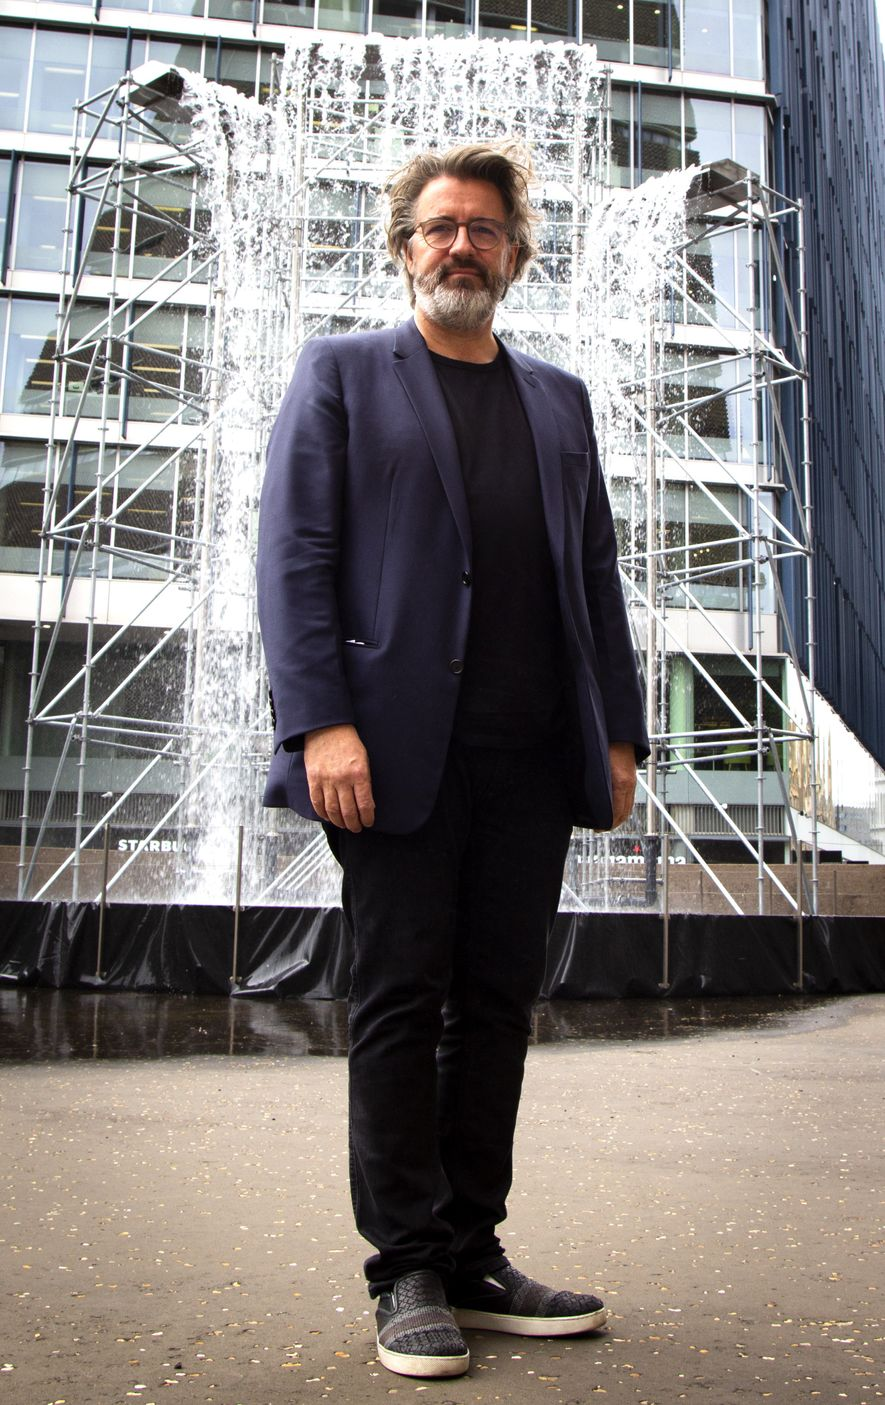 Olafur Eliasson in front of the waterfall installation, Tate Modern.